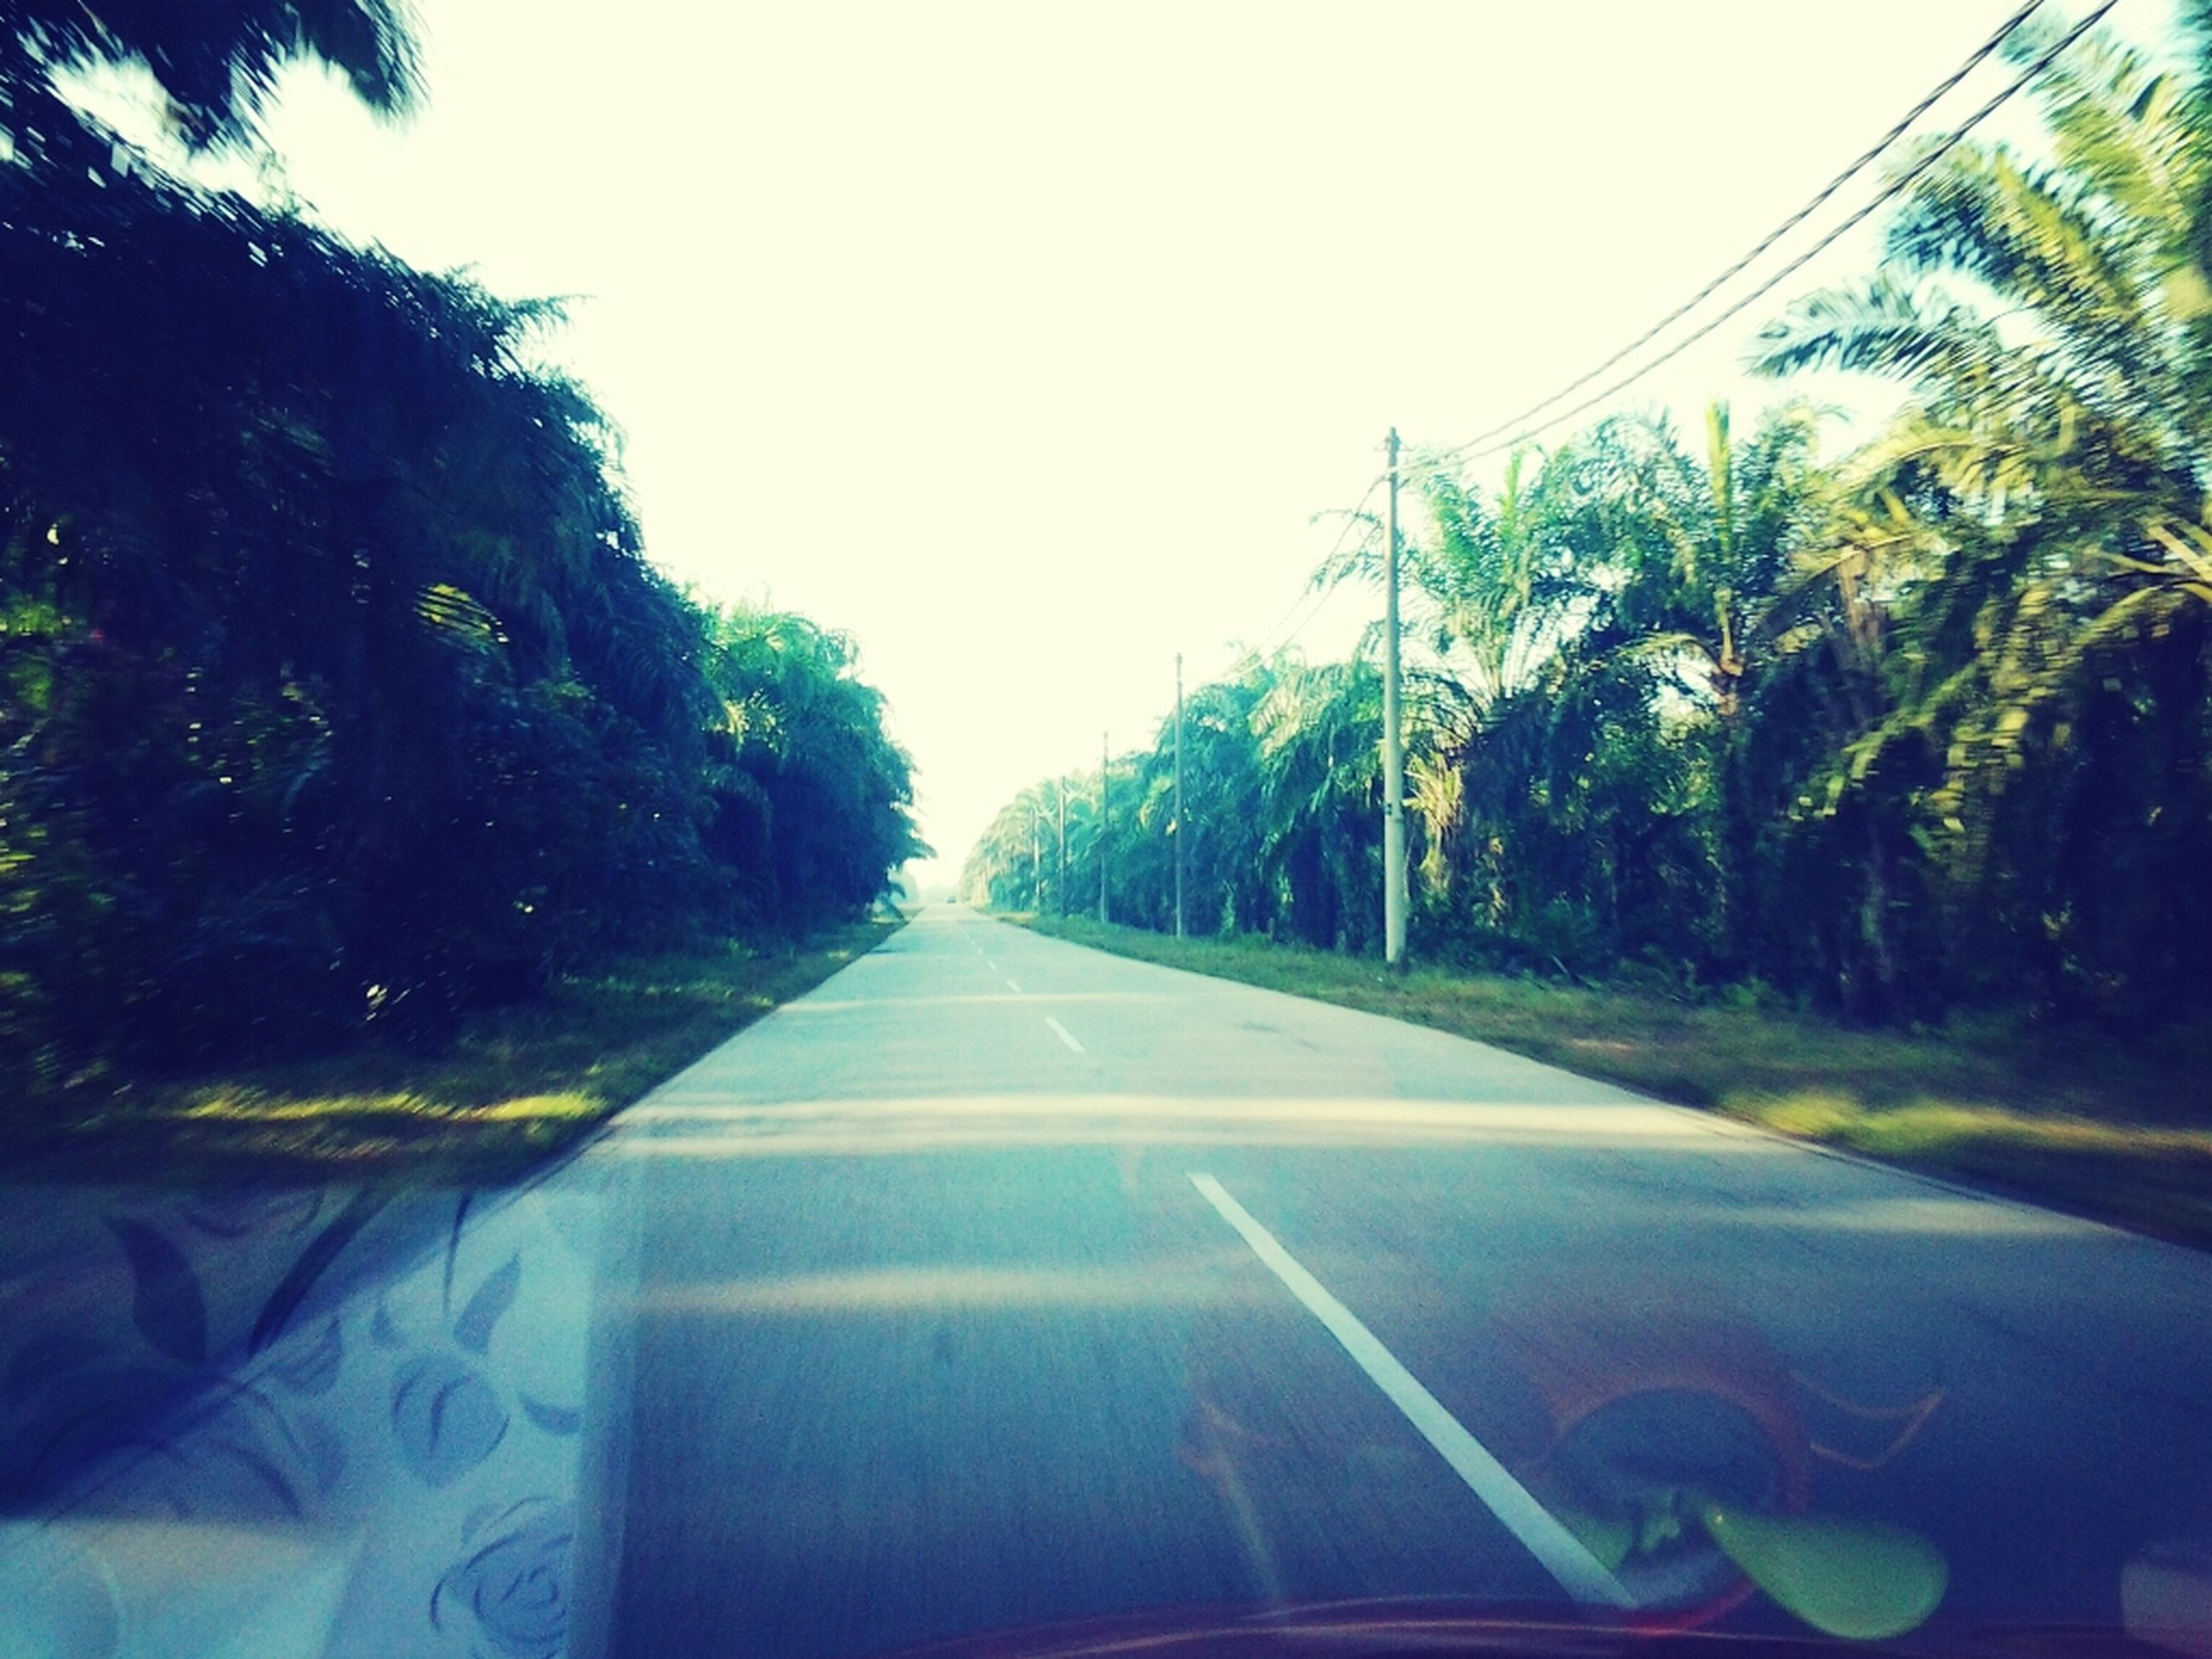 transportation, the way forward, road, tree, diminishing perspective, clear sky, road marking, vanishing point, car, windshield, mode of transport, sky, vehicle interior, land vehicle, country road, glass - material, street, growth, transparent, long